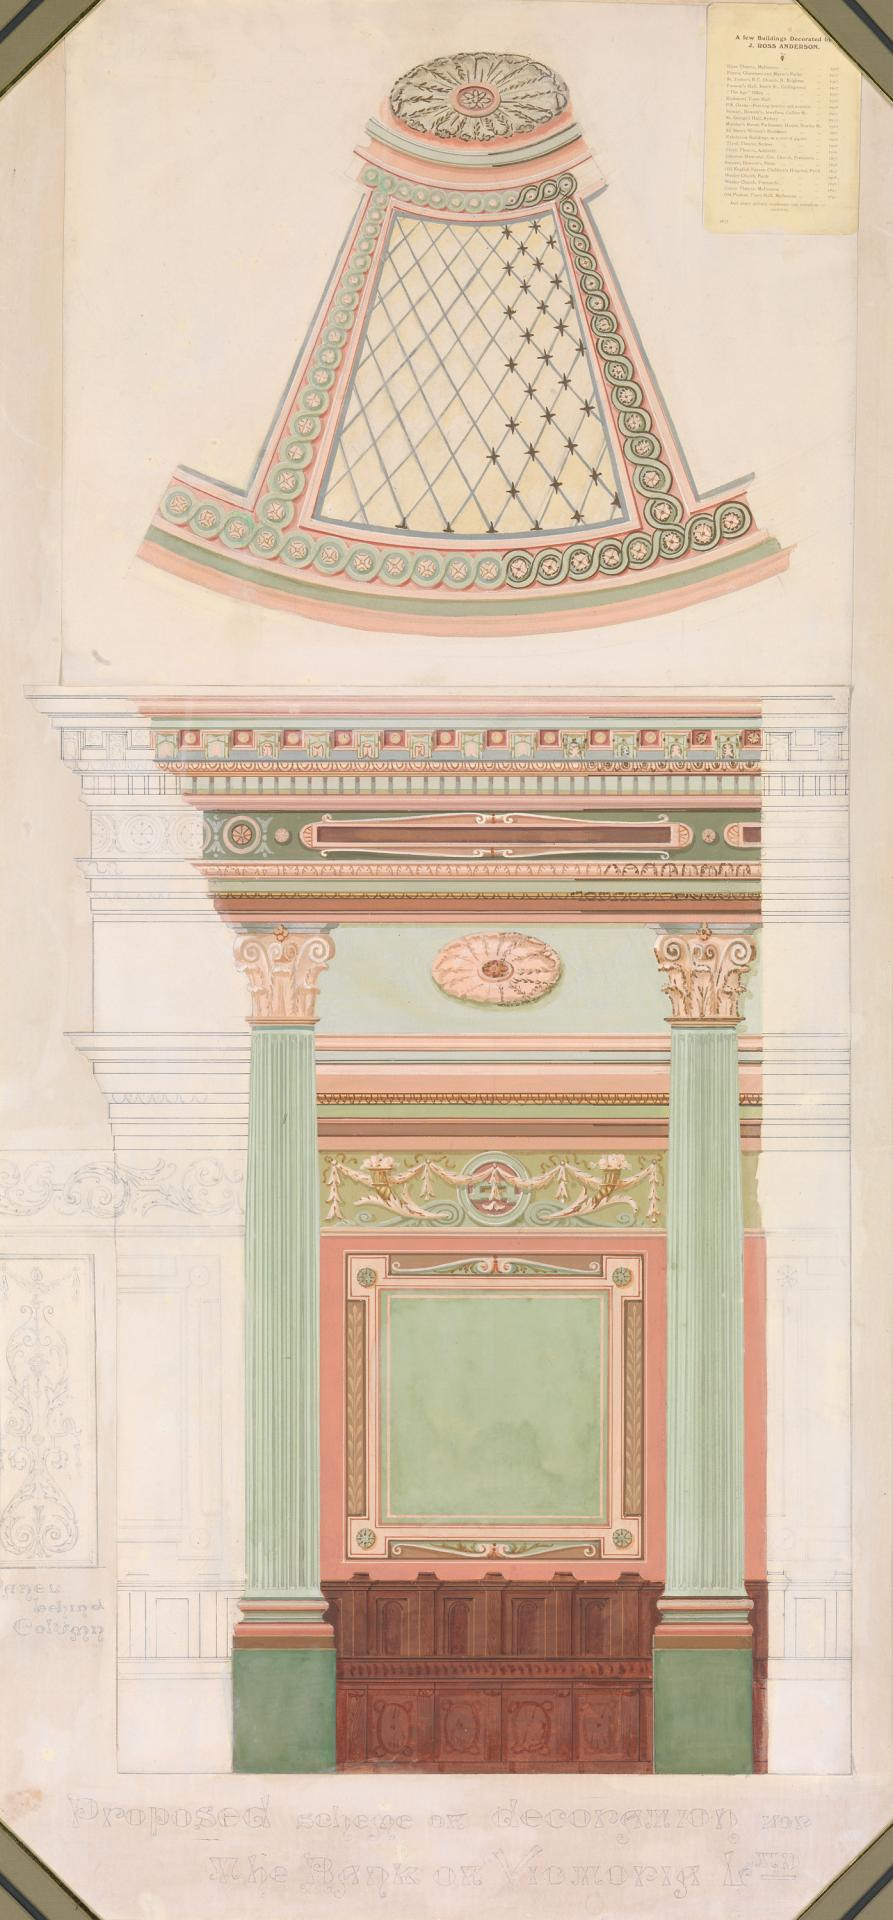 Proposed scheme of decoration for the Bank of Victoria Ltd